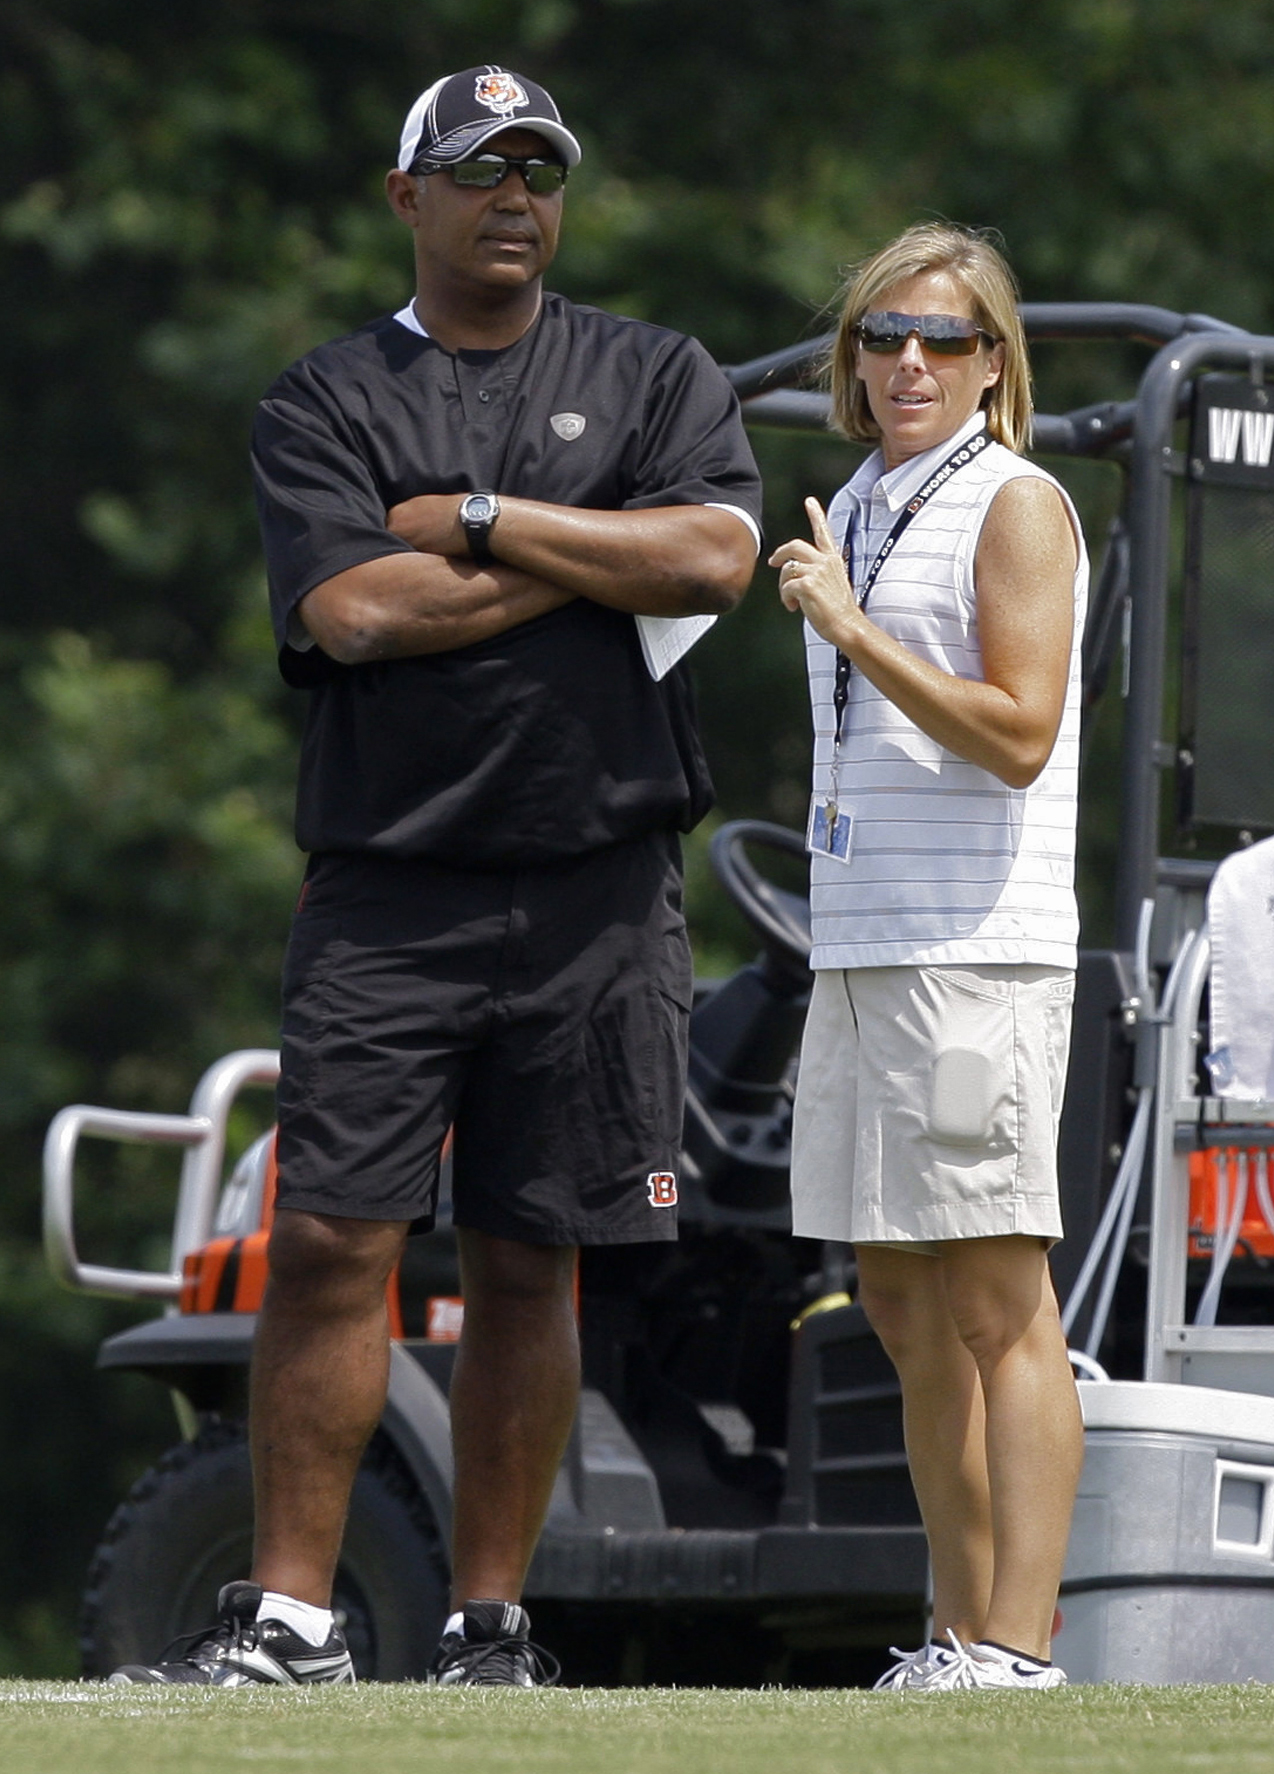 FILE - In this Aug. 1, 2010 file photo, Cincinnati Bengals executive vice president Katie Blackburn, right, talks with head coach Marvin Lewis during practice at the NFL football team's training camp in Georgetown, Ky. Blackburn is the daughter of Bengals